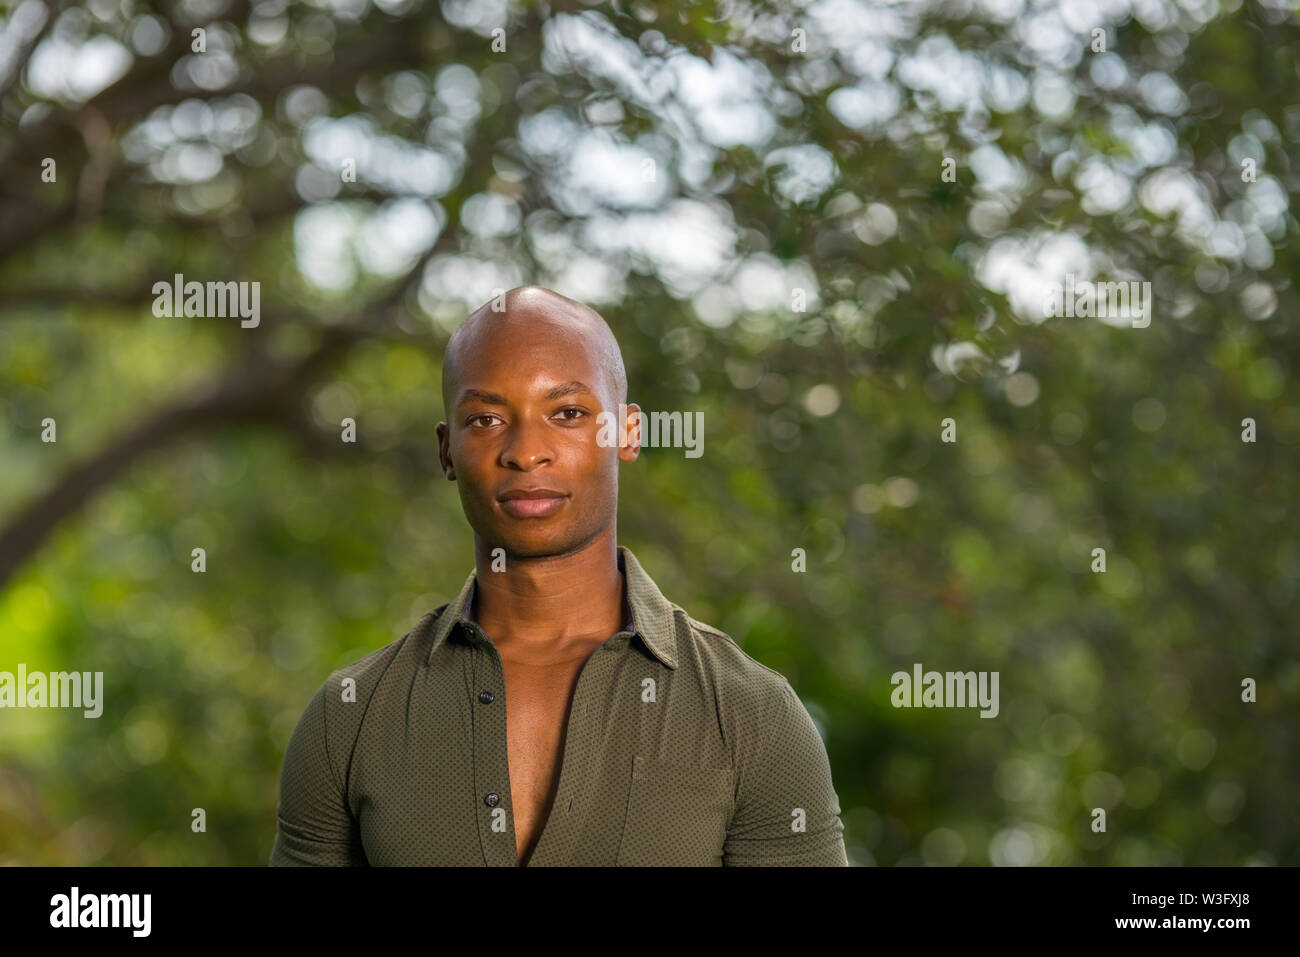 Headshot portrait of a handsome African American or Jamaican male model posing at a park scene - Stock Image